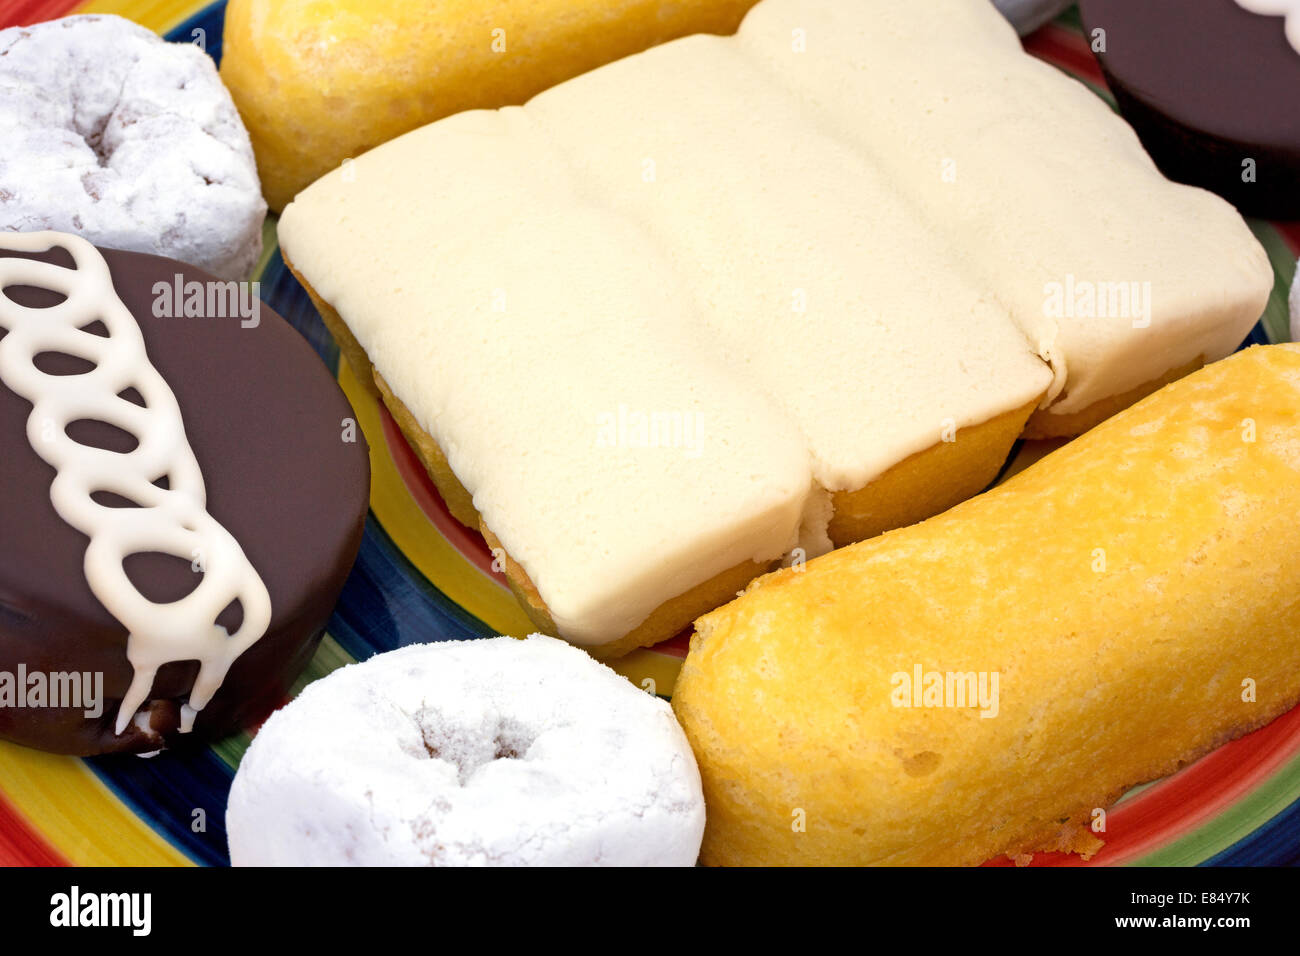 A very close view of junk food including powdered donuts, cream filled cakes, chocolate iced cakes and iced covered - Stock Image